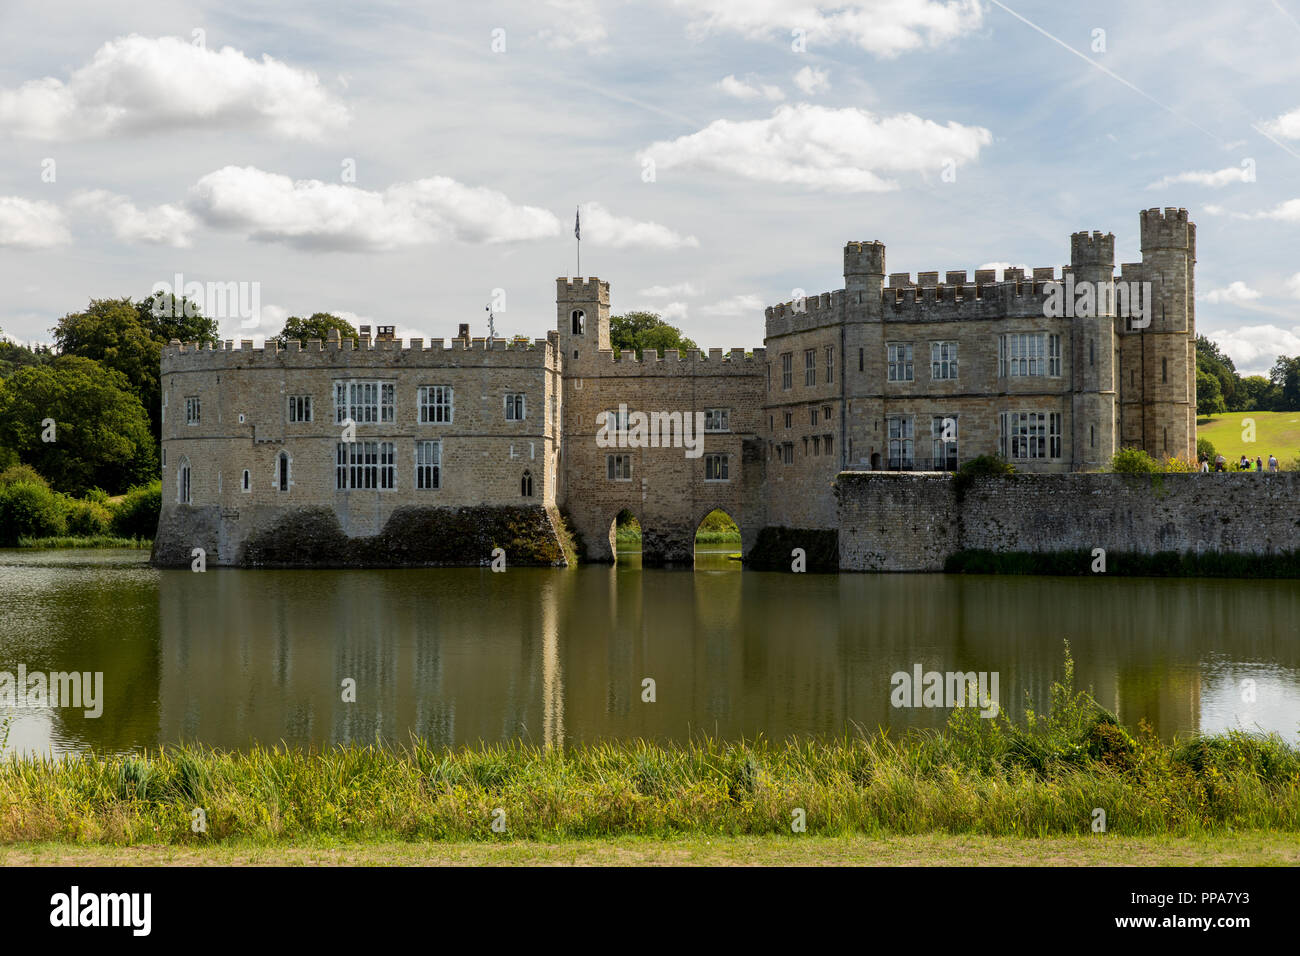 Rundgang durch Leeds Castle - Stock Image